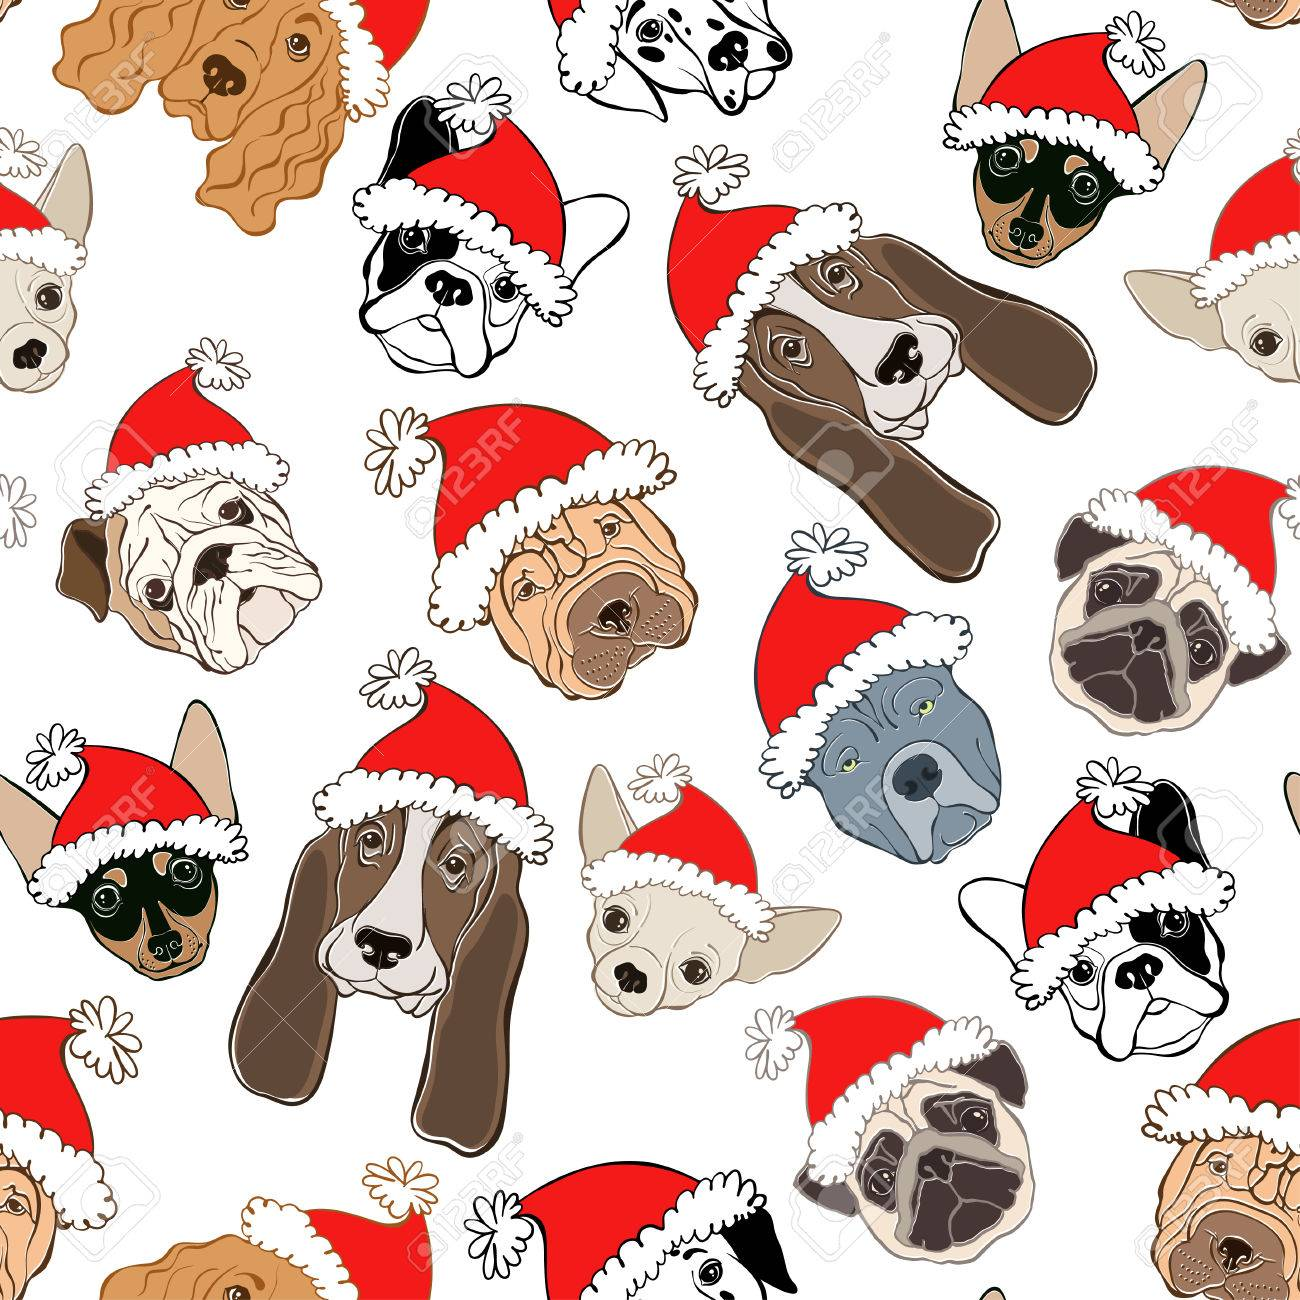 264aec545fb Dog - animal symbol of new year. A Seamless pattern with dog s face in  Santa s hat on a white background. Dog -